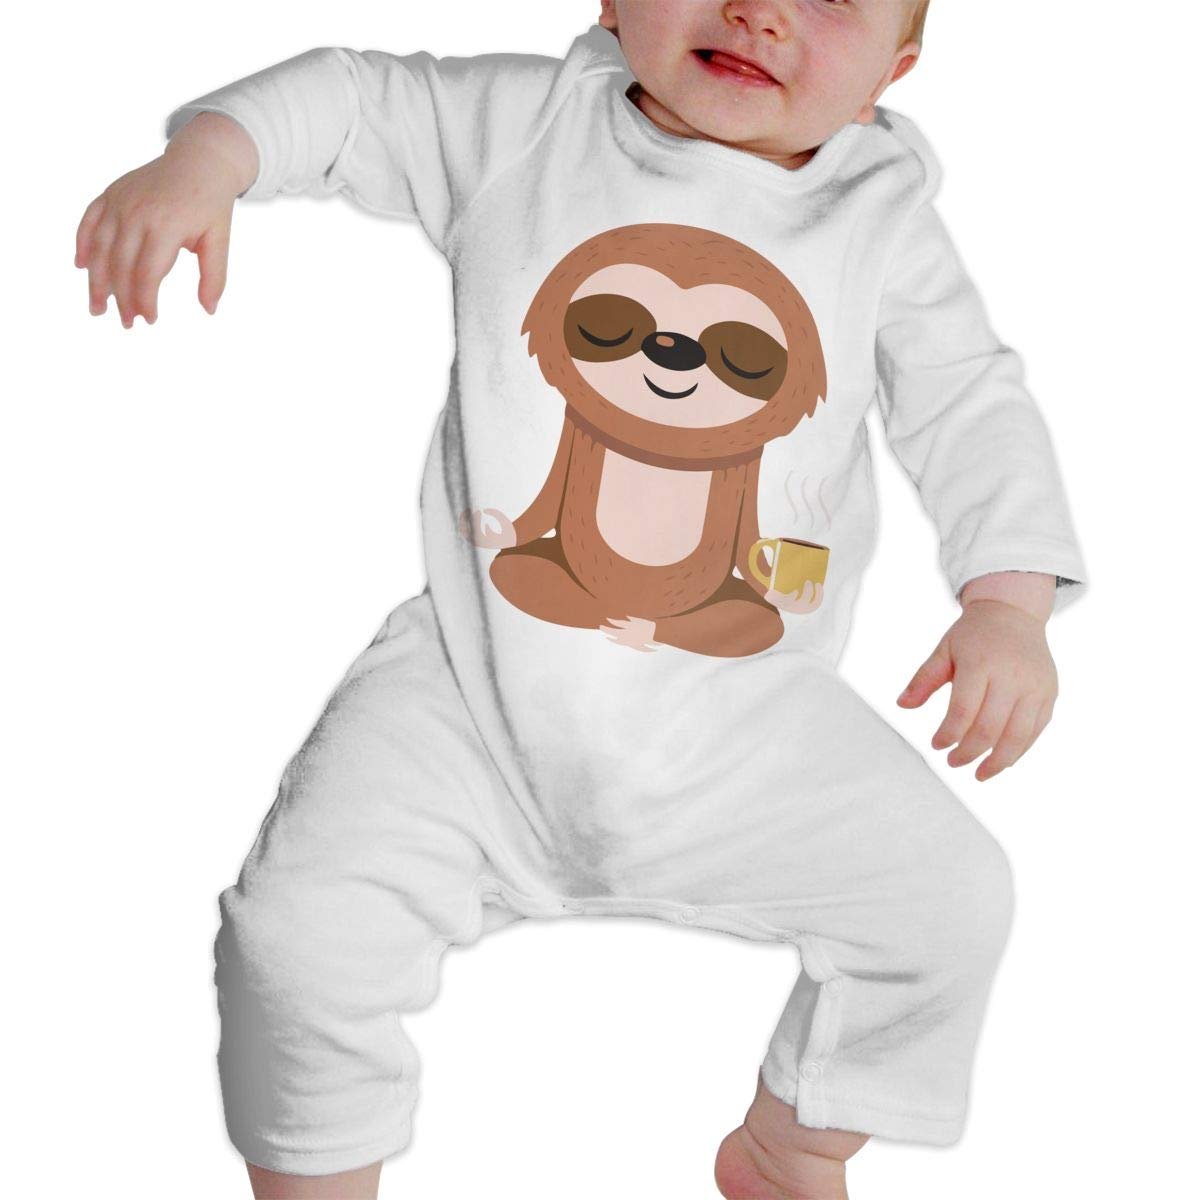 A1BY-5US Baby Infant Toddler Cotton Long Sleeve Yoga Sloth Climb Jumpsuit One-Piece Romper Clothes